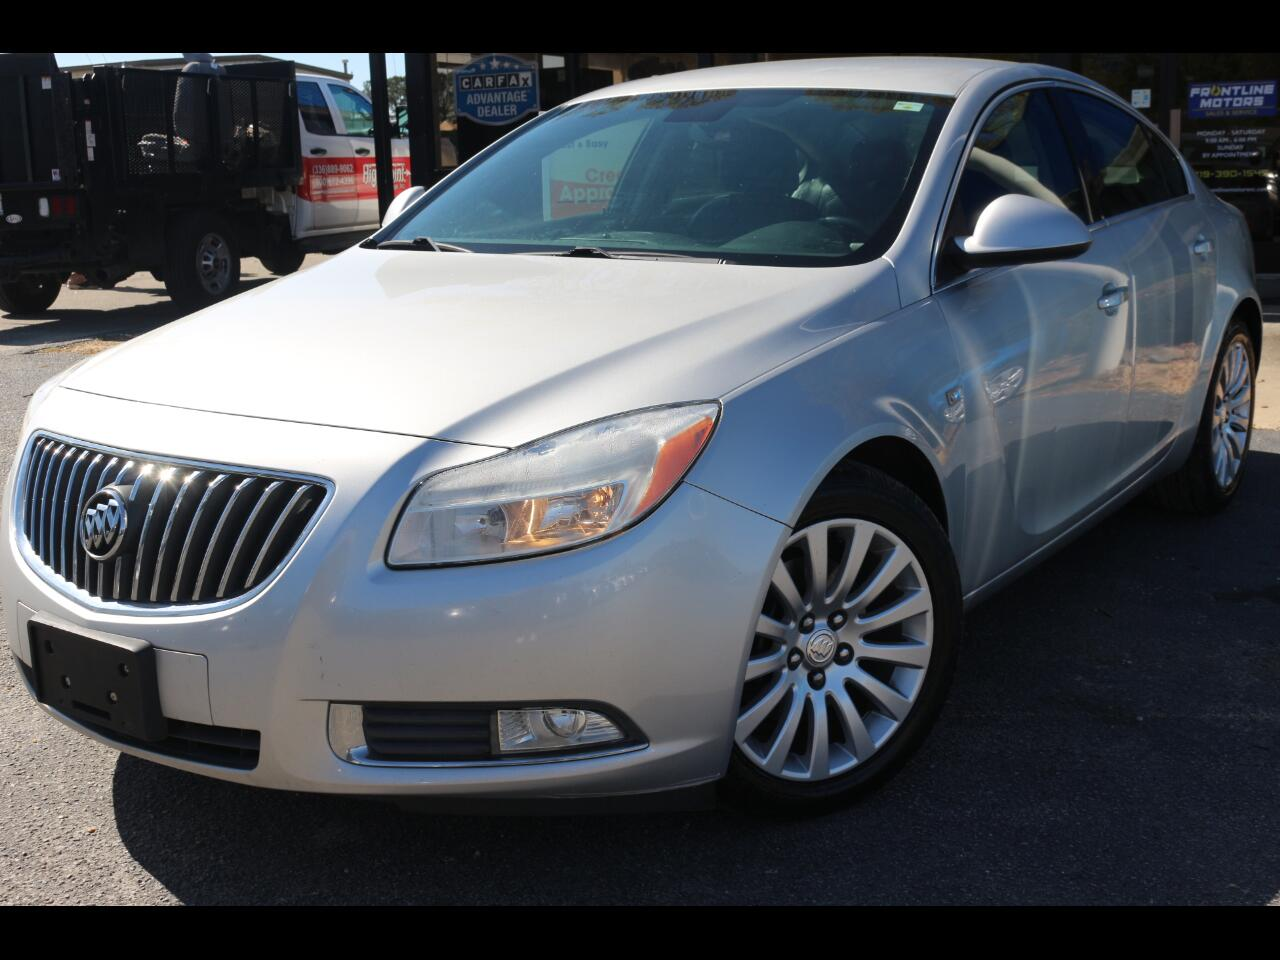 Buick Regal CXL Turbo - 1XT 2011